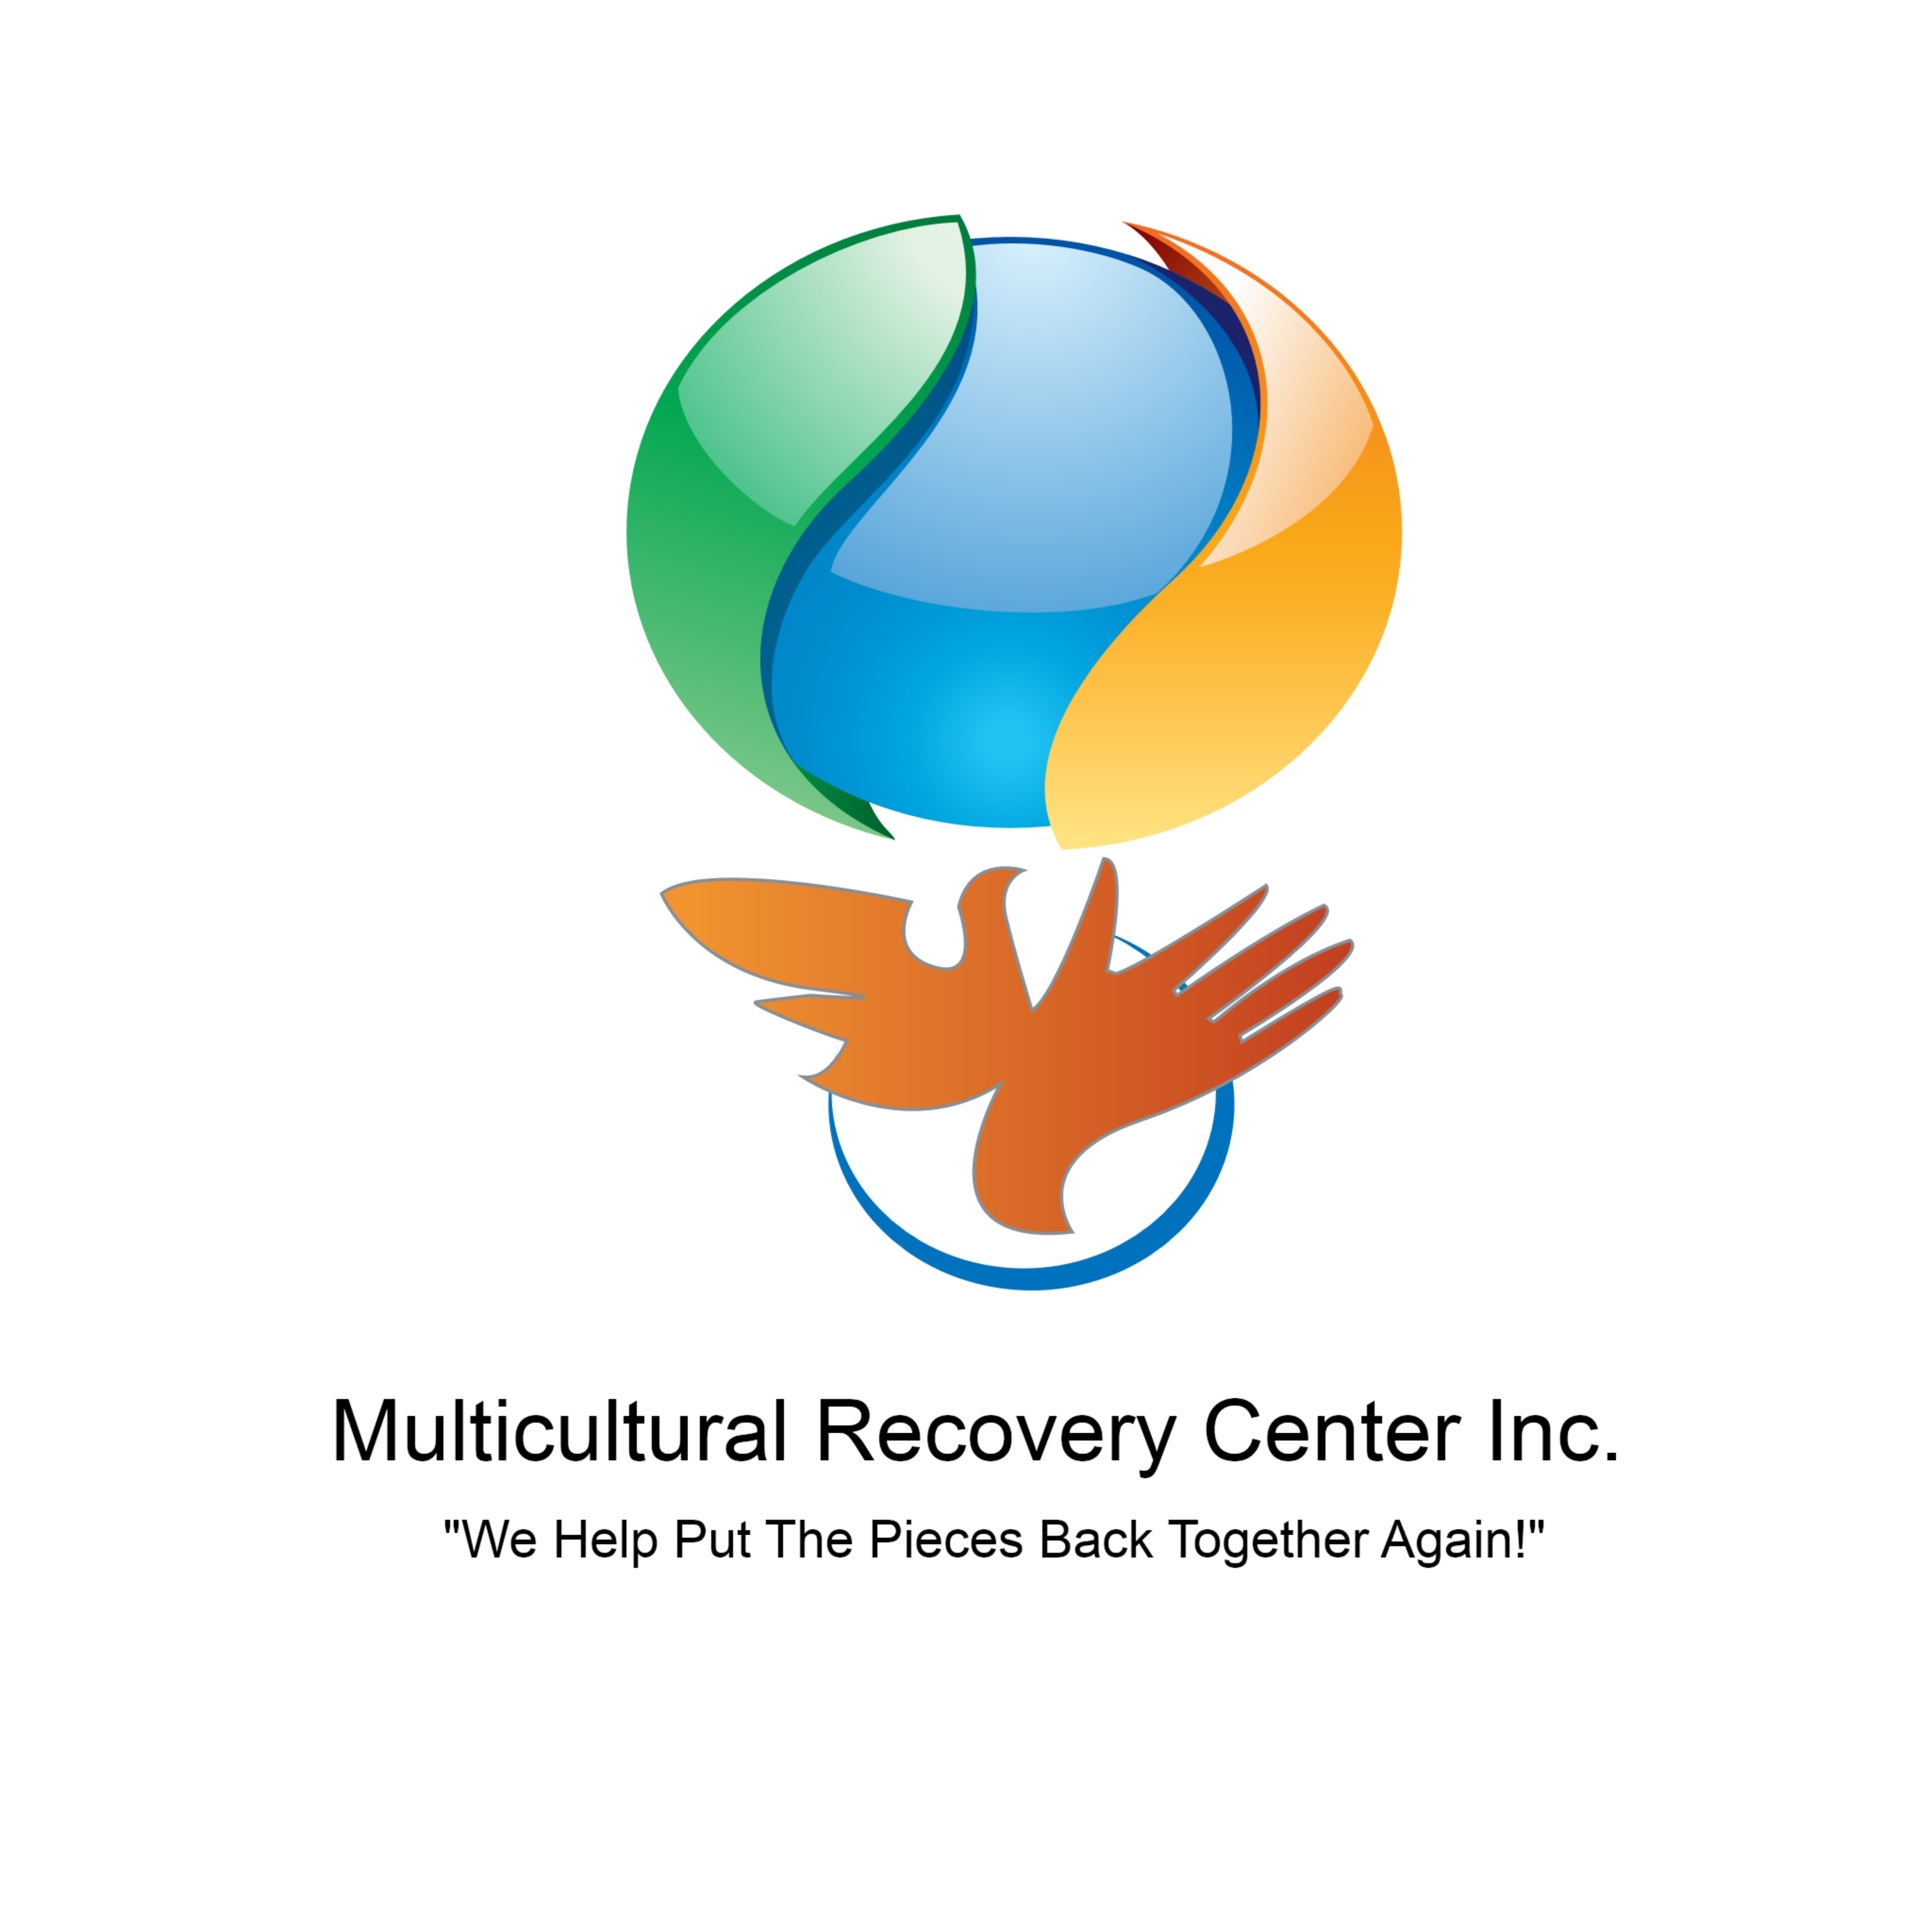 Multicultural Recovery Center